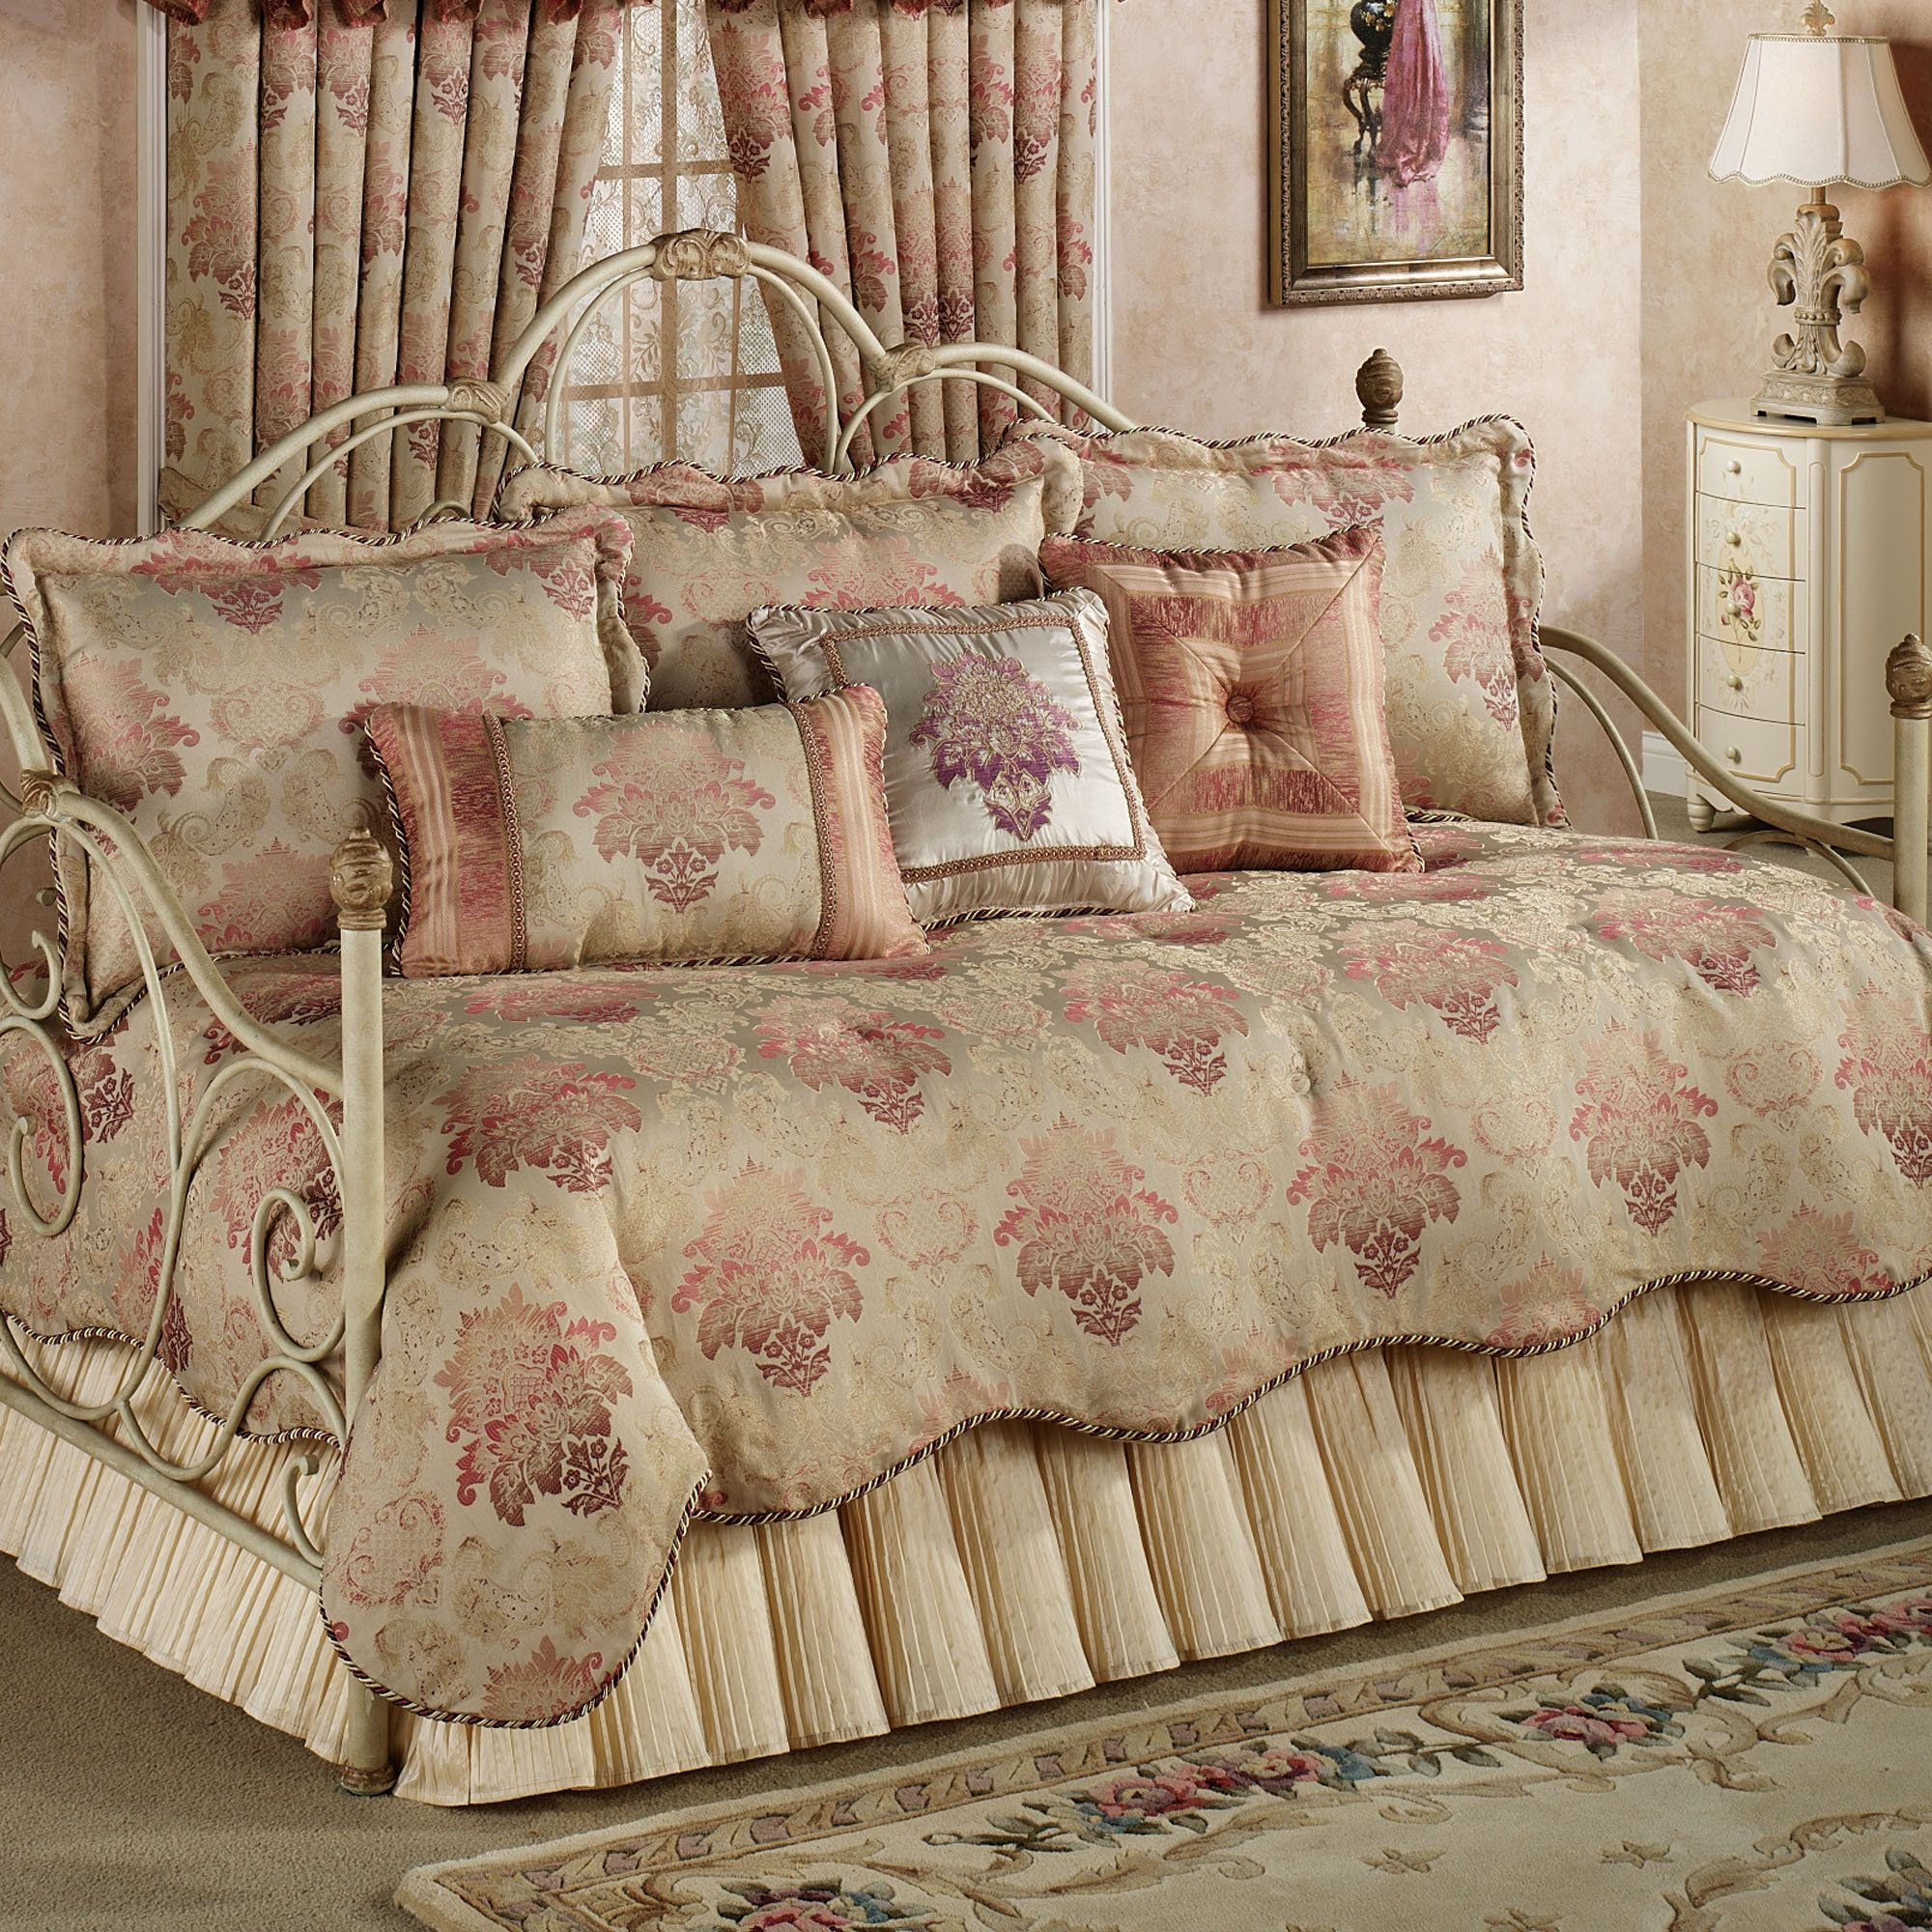 Chandon Damask 5 pc Daybed Bedding Set Beddings